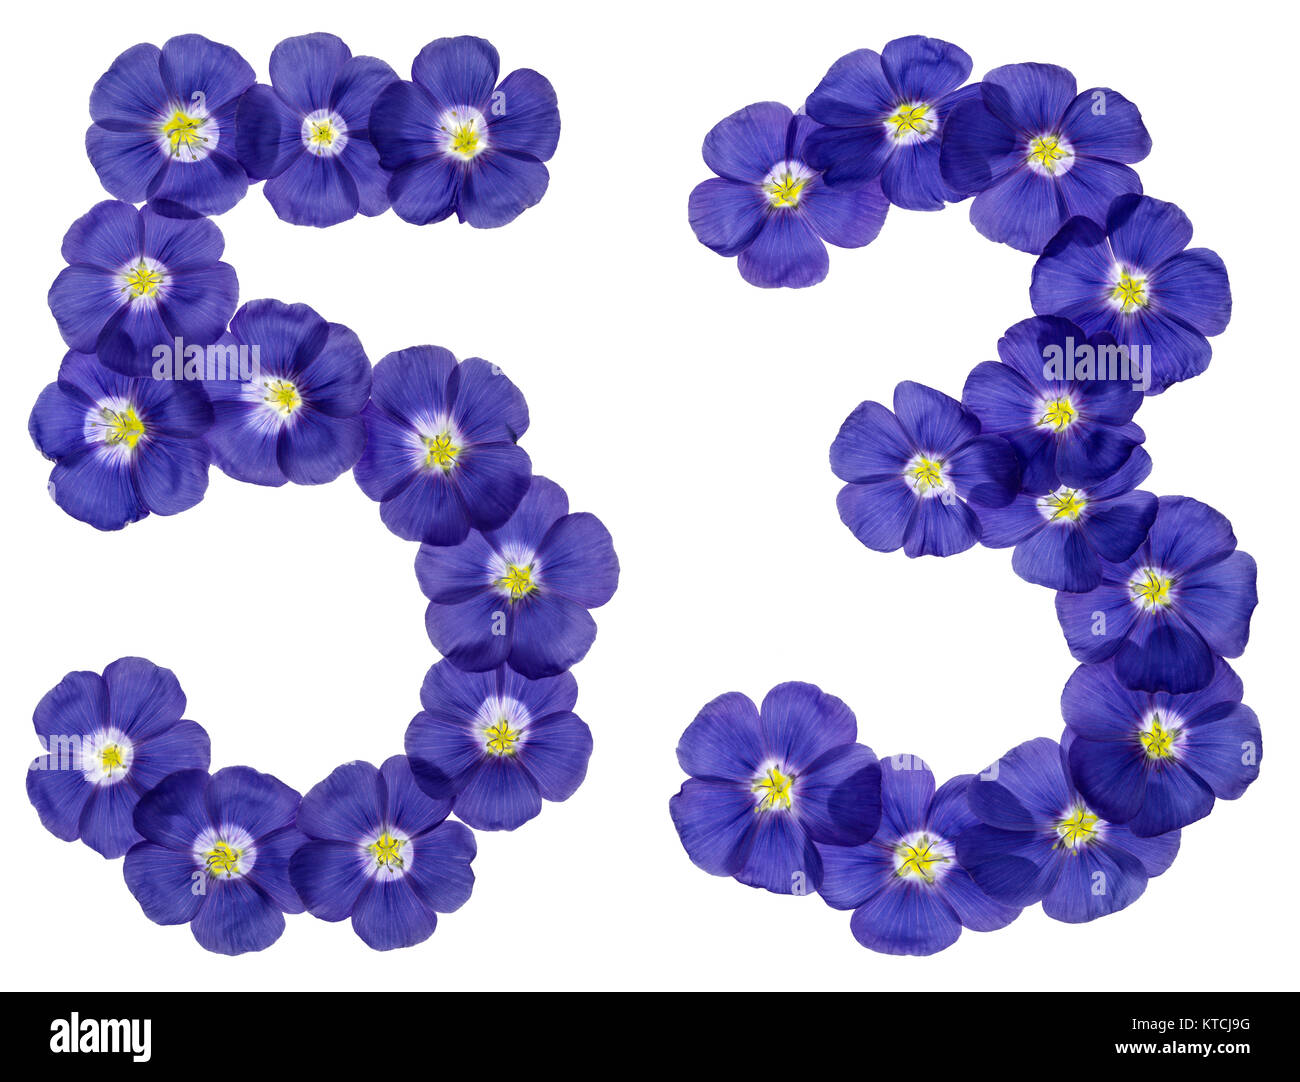 Arabic numeral 53, fifty three, from blue flowers of flax, isolated on white background Stock Photo